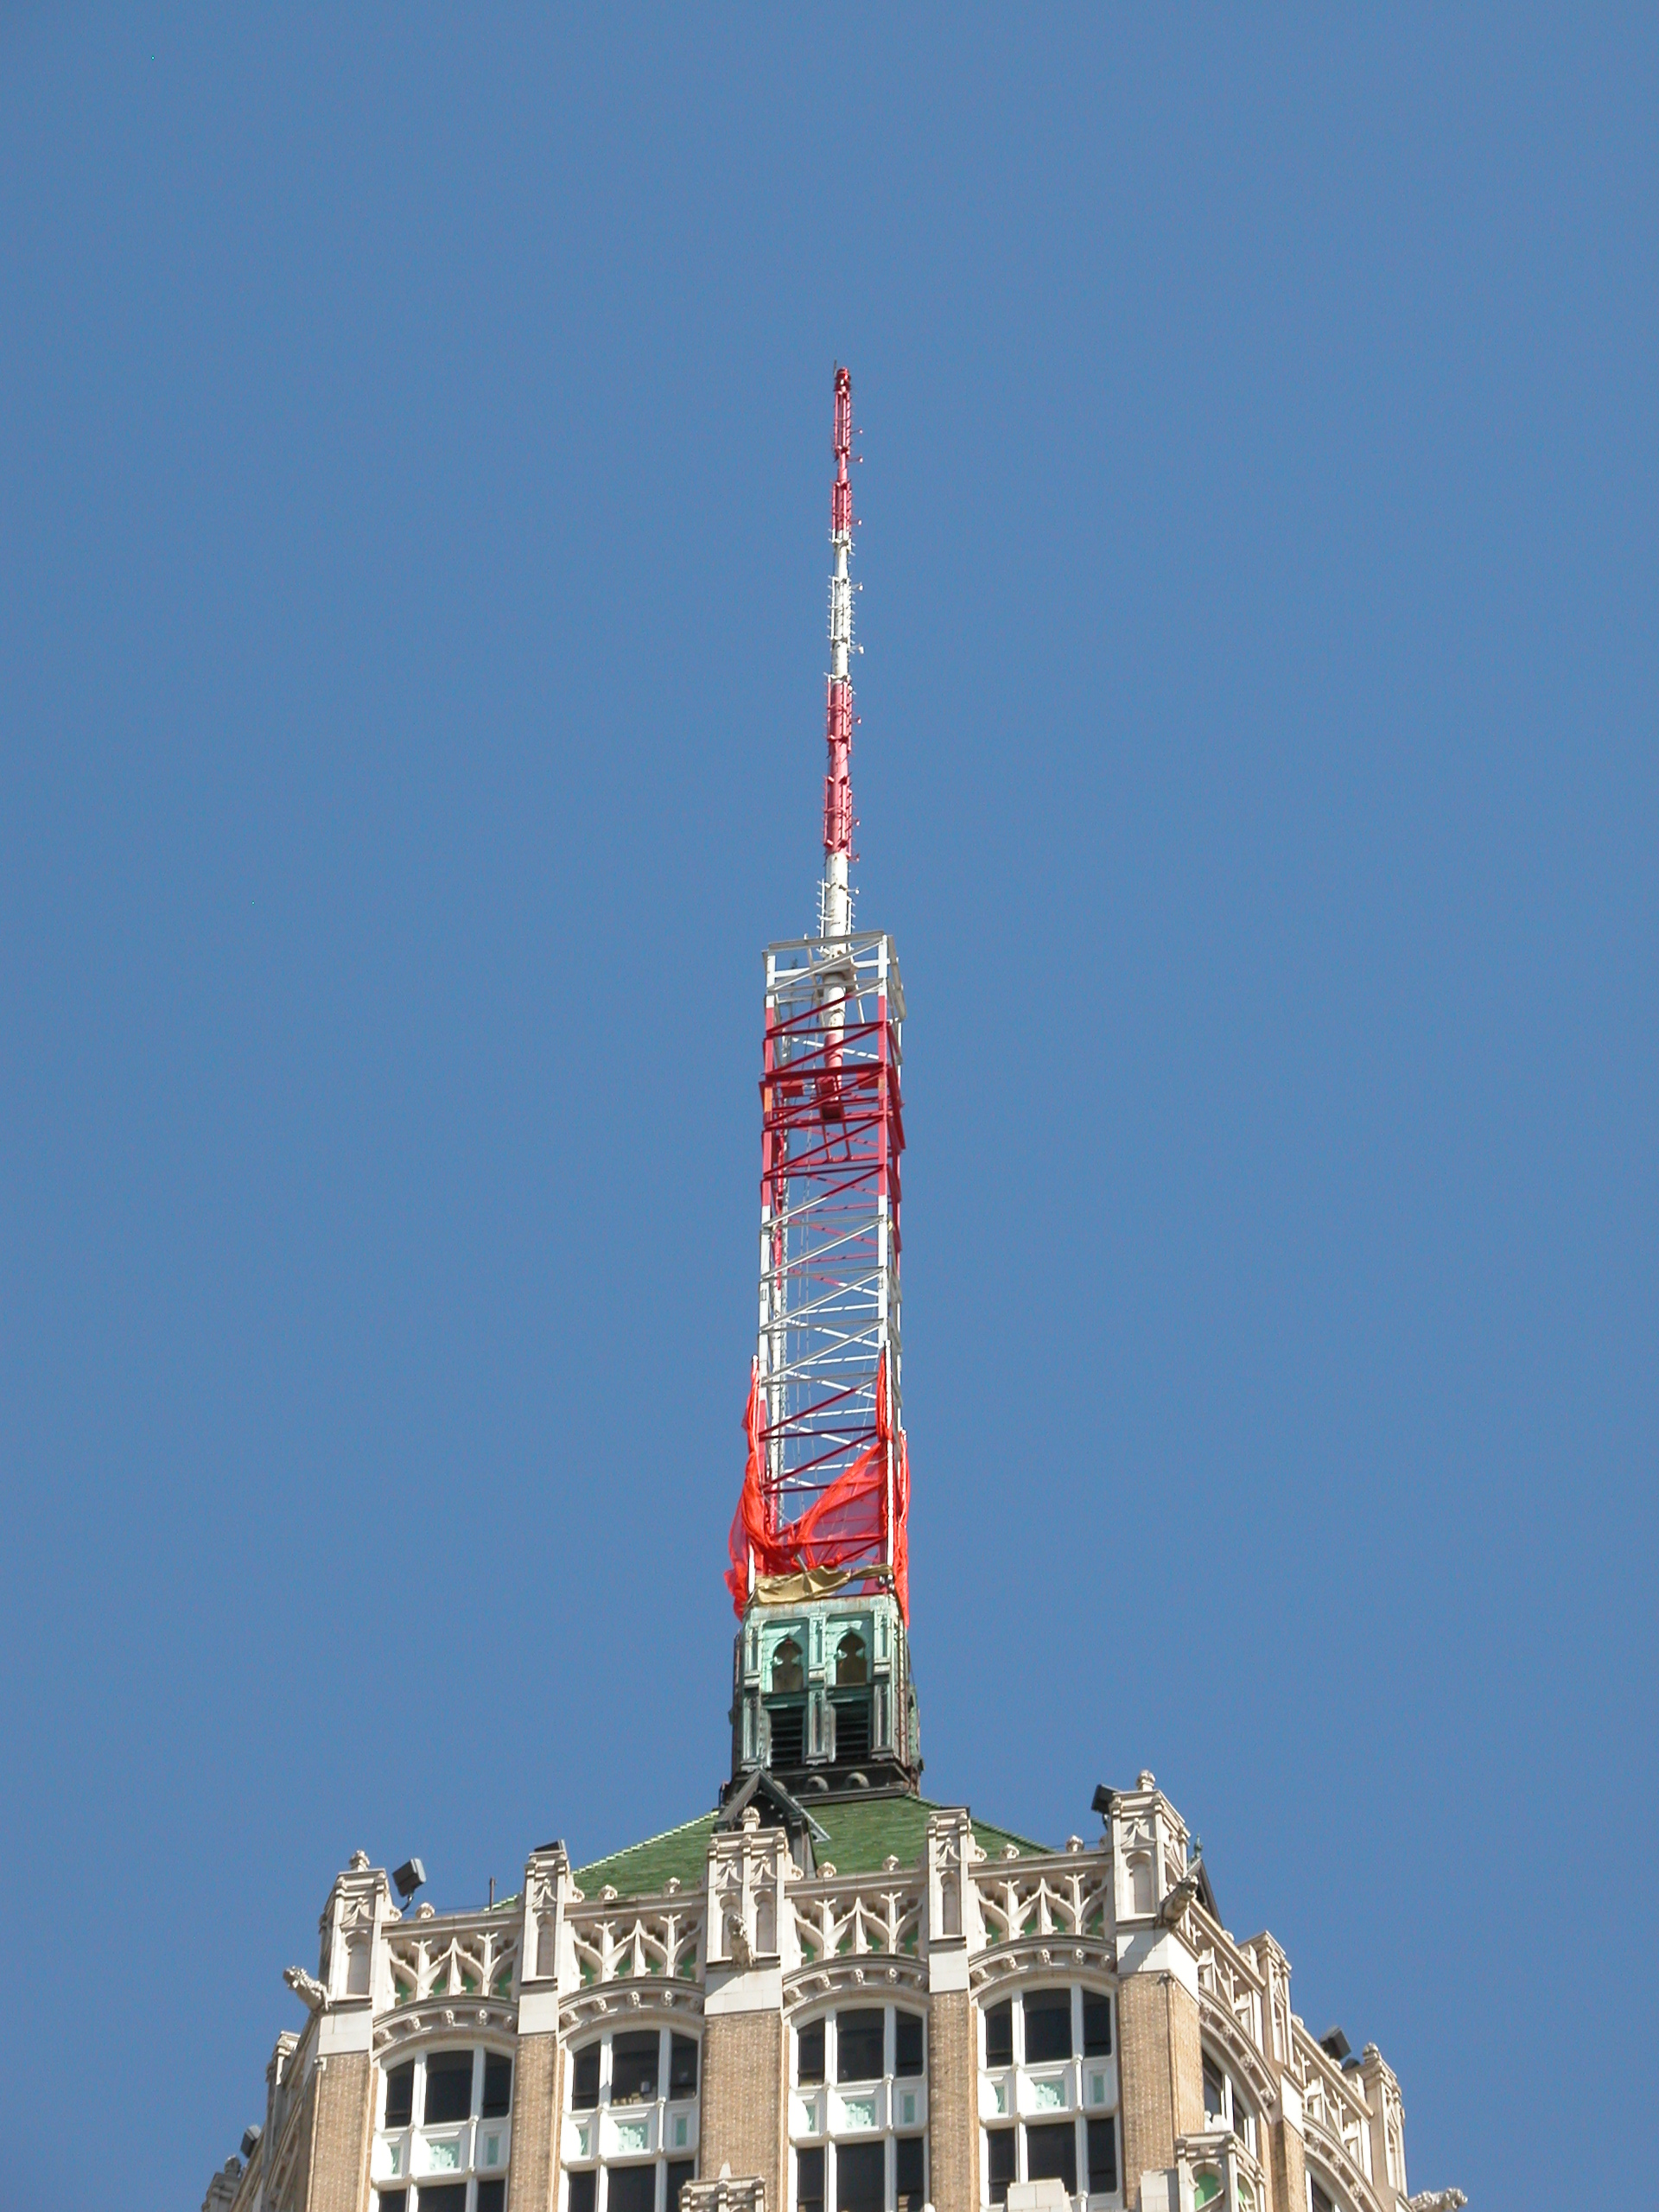 File:164-foot television antenna, Tower Life Building, 2006